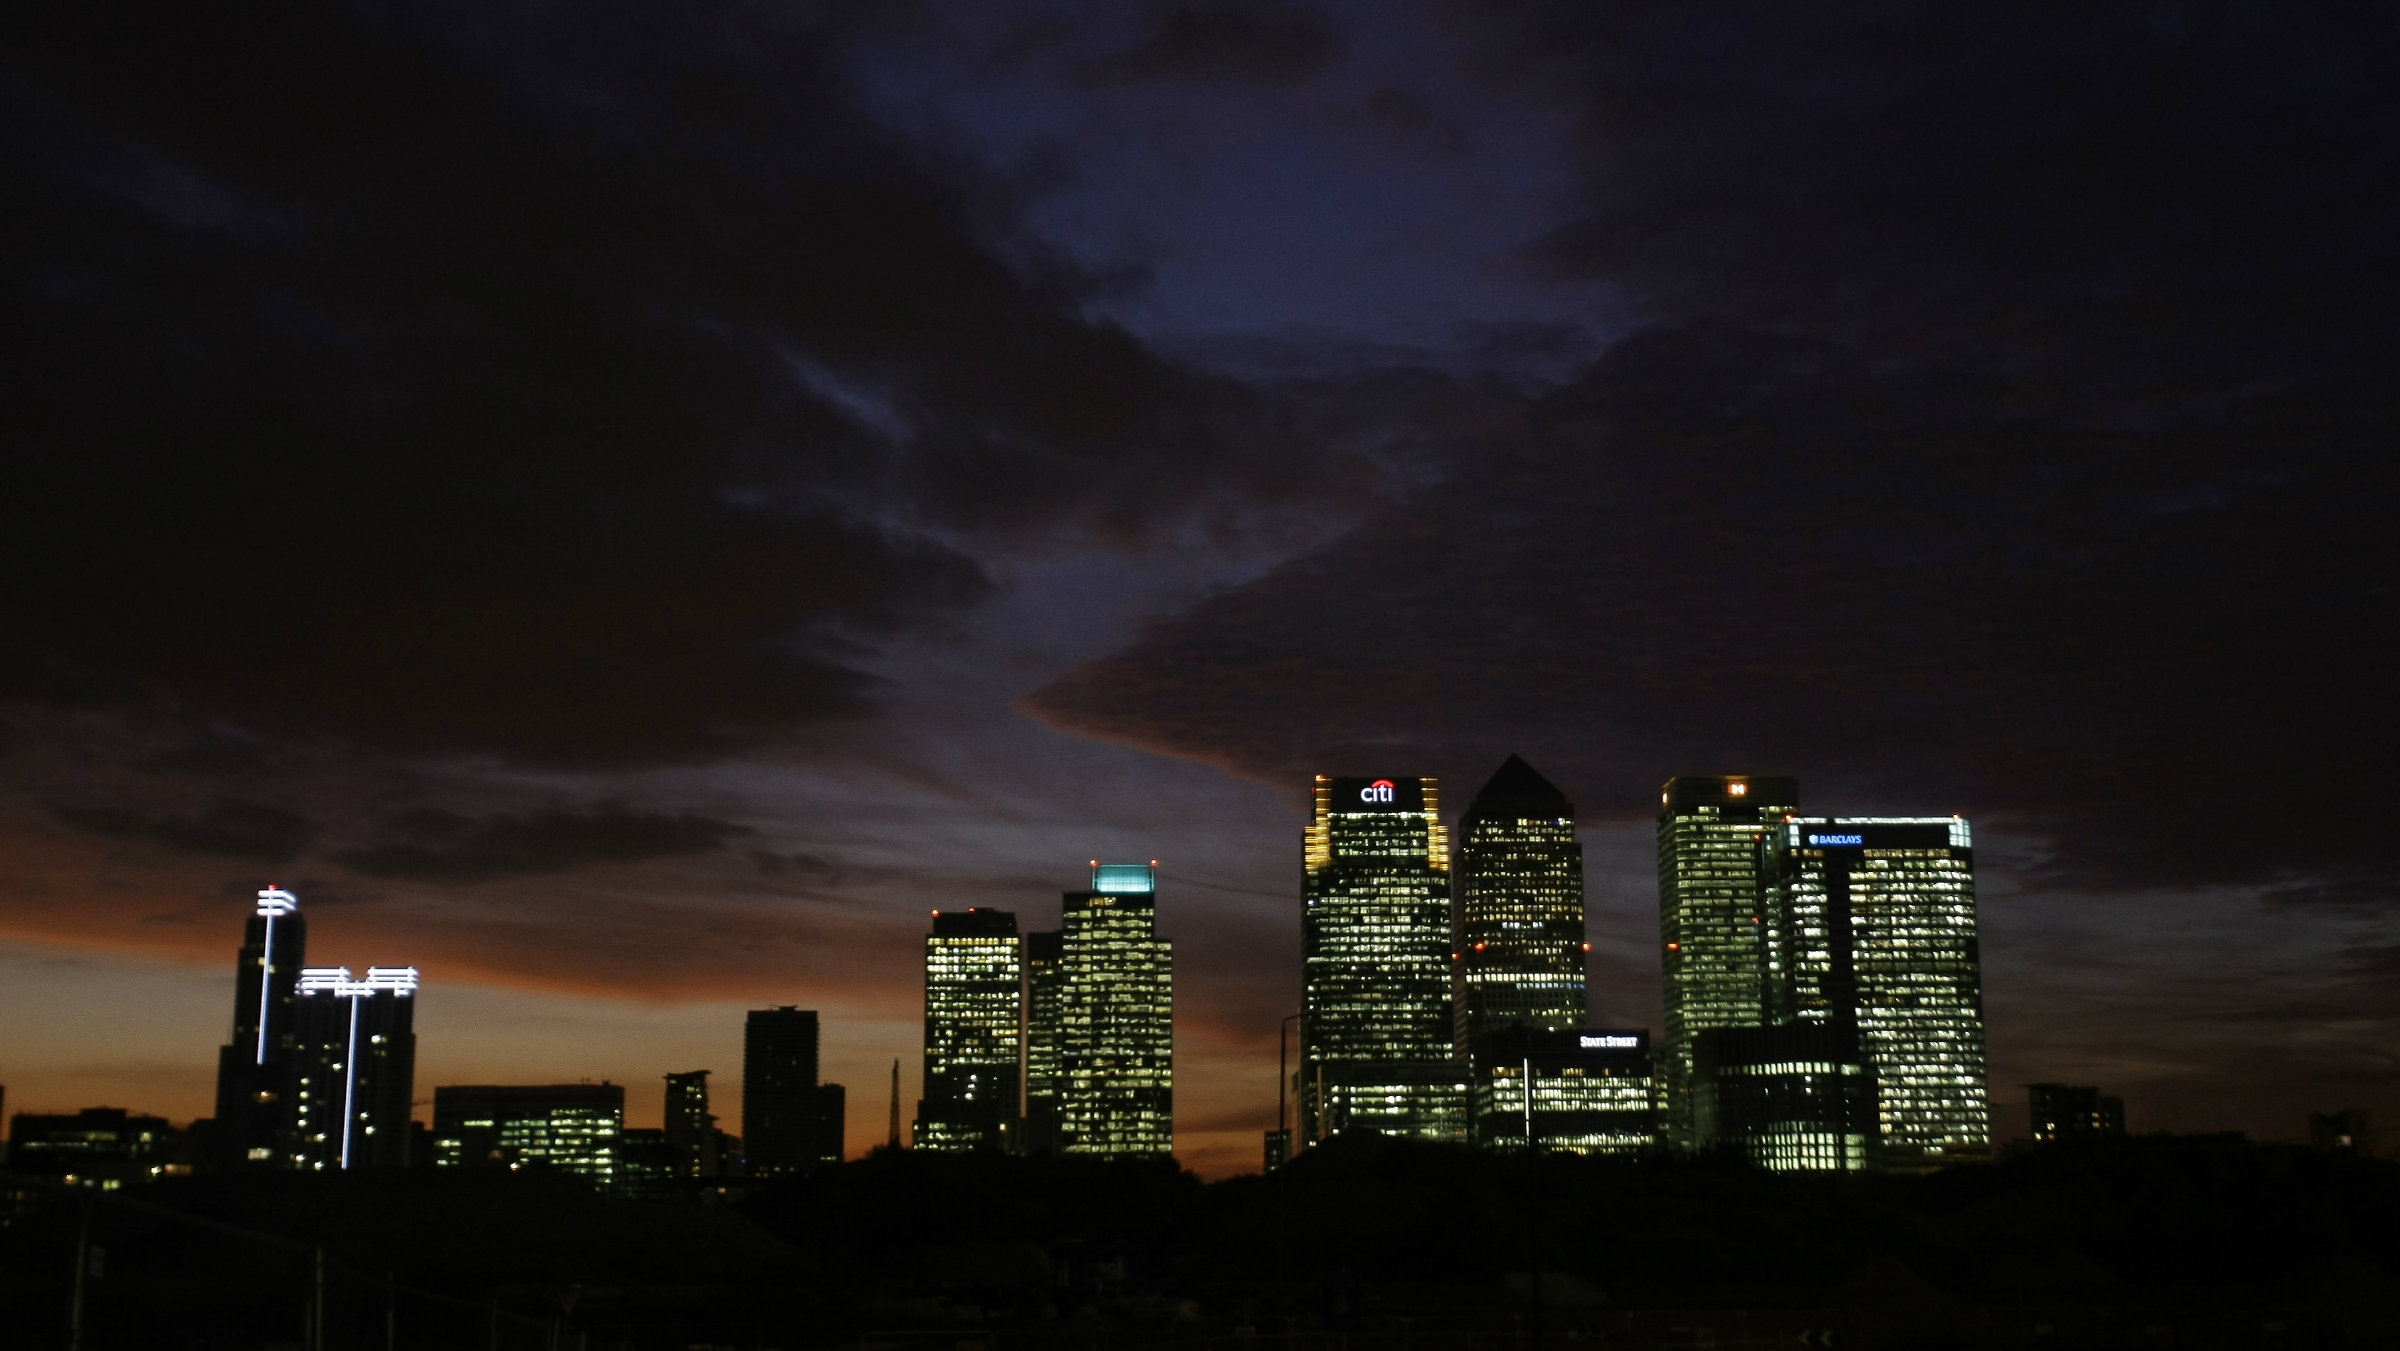 The Canary Wharf district is seen at sunset in London.